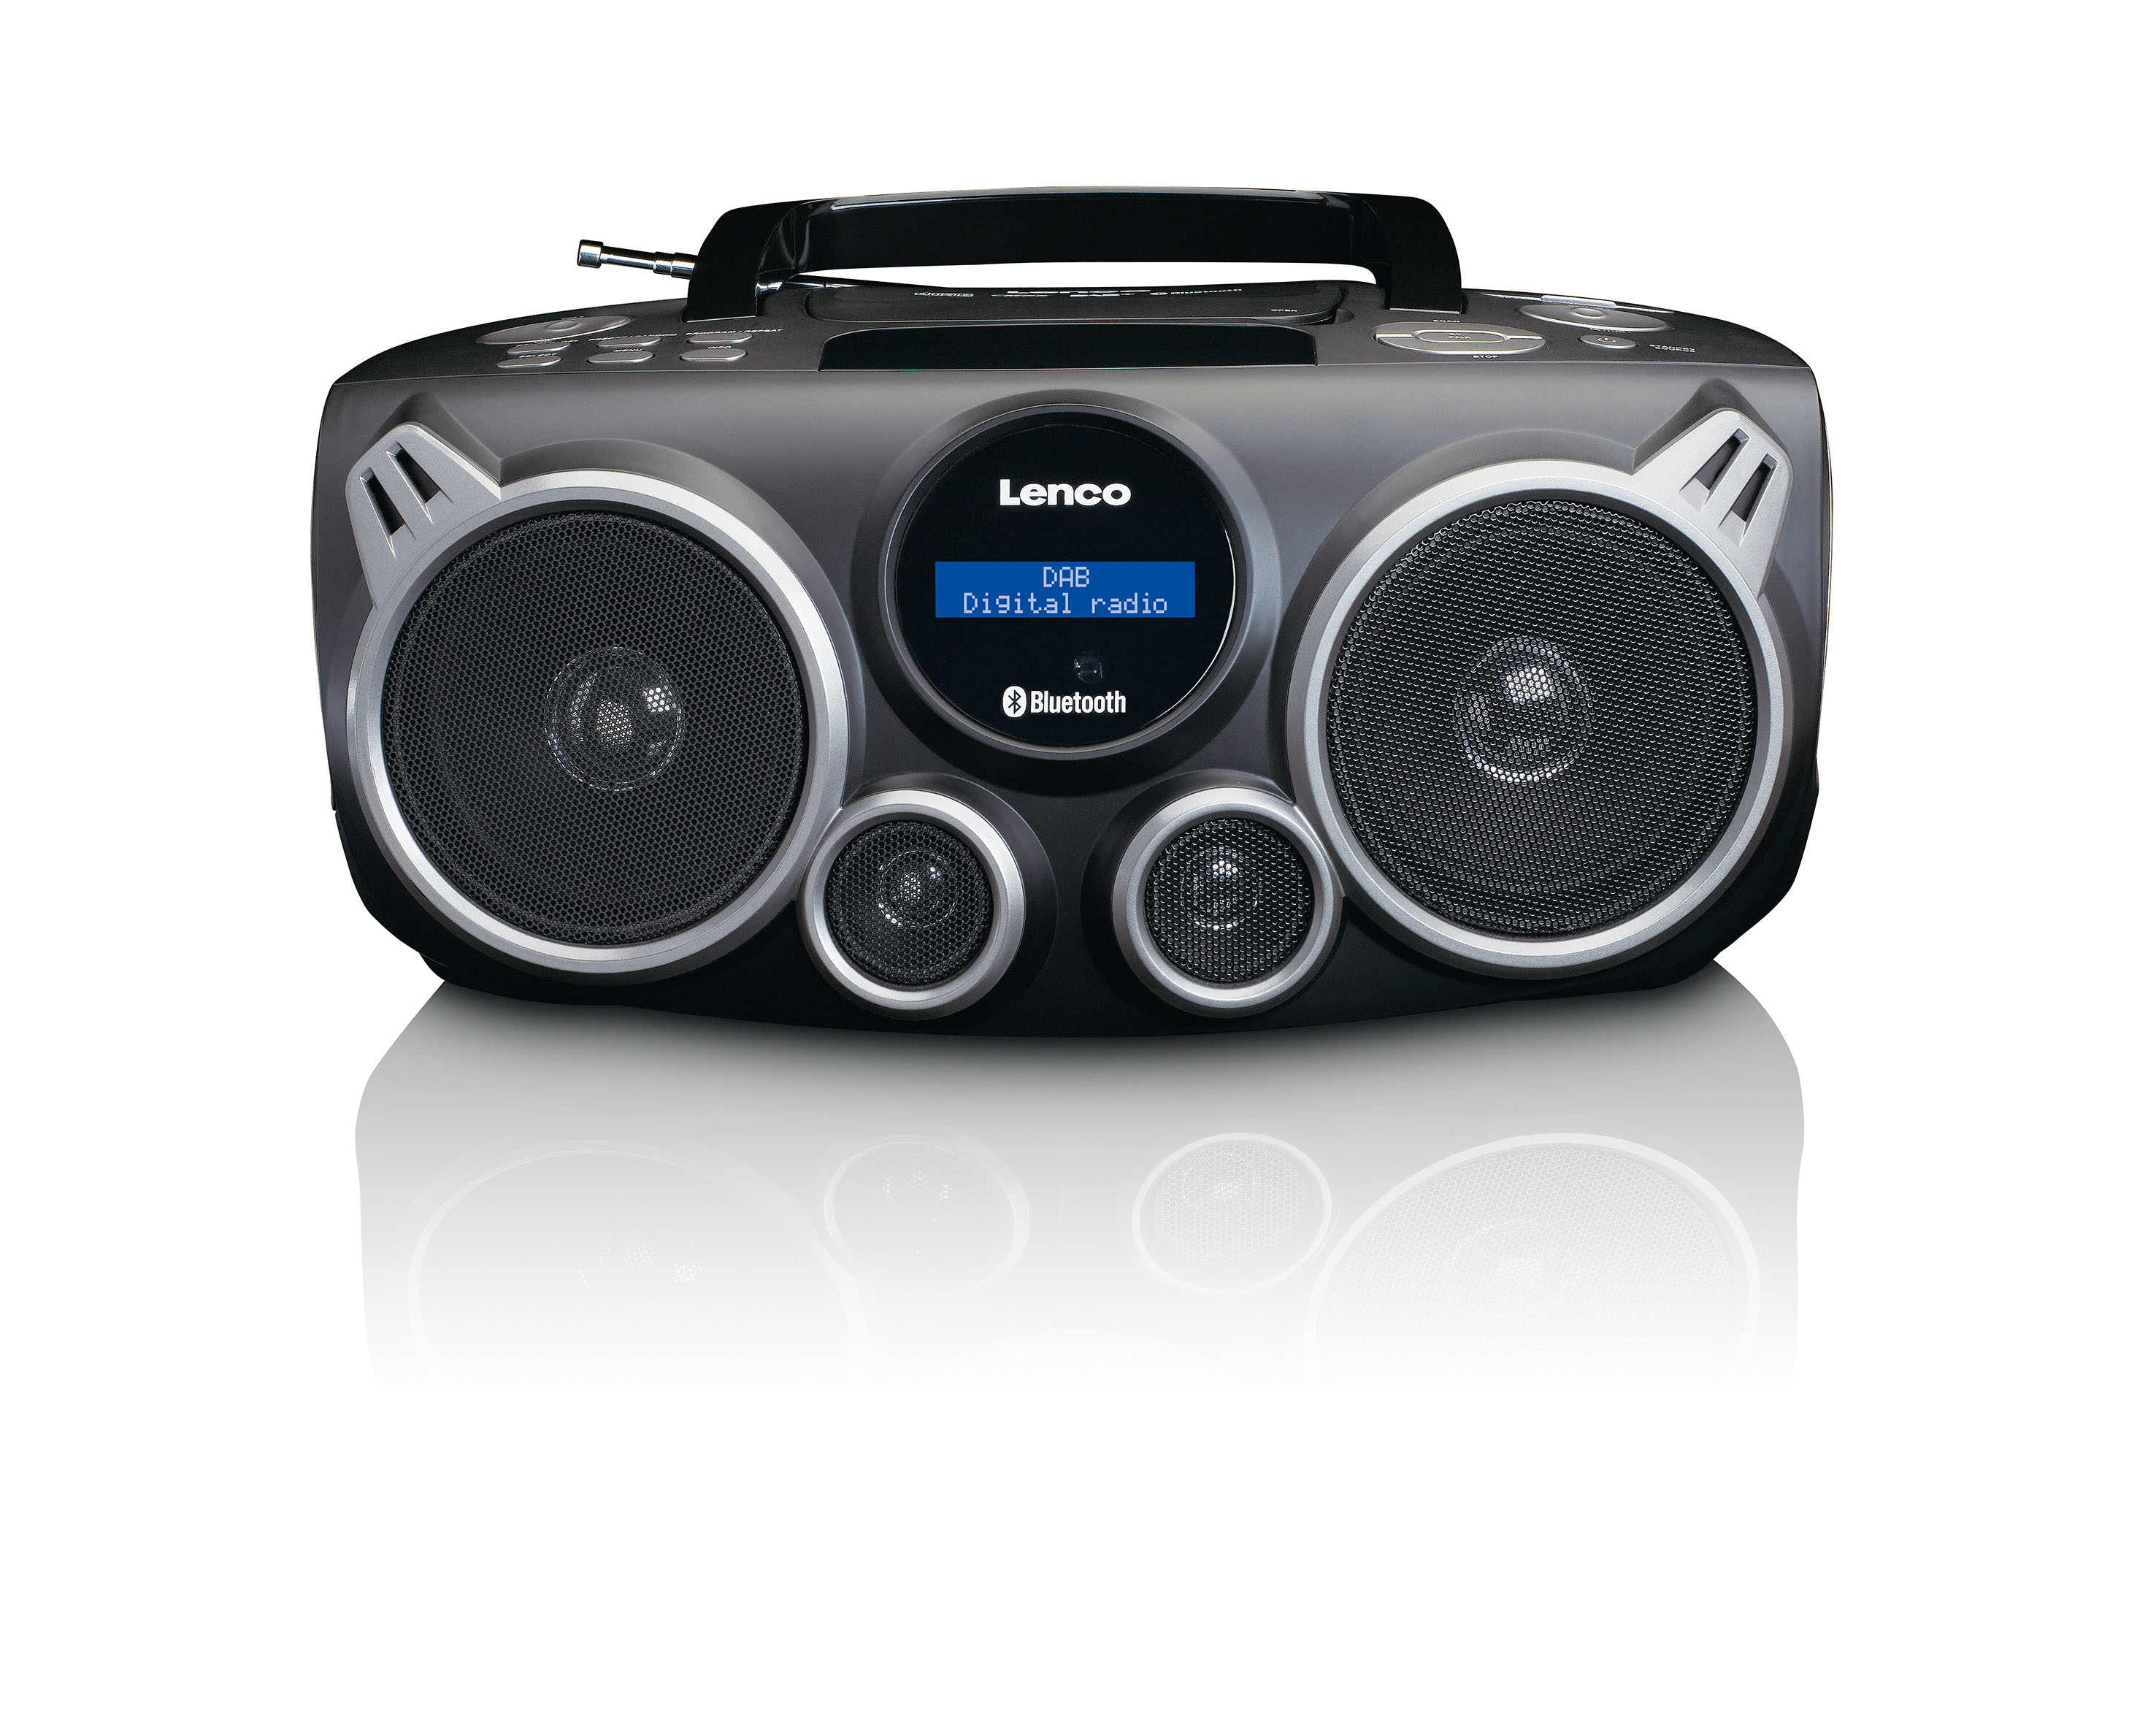 Lenco SCD-685 portables DAB+/FM Radio CD Bluetooth USB SD-Kartenleser für 107,22 Euro